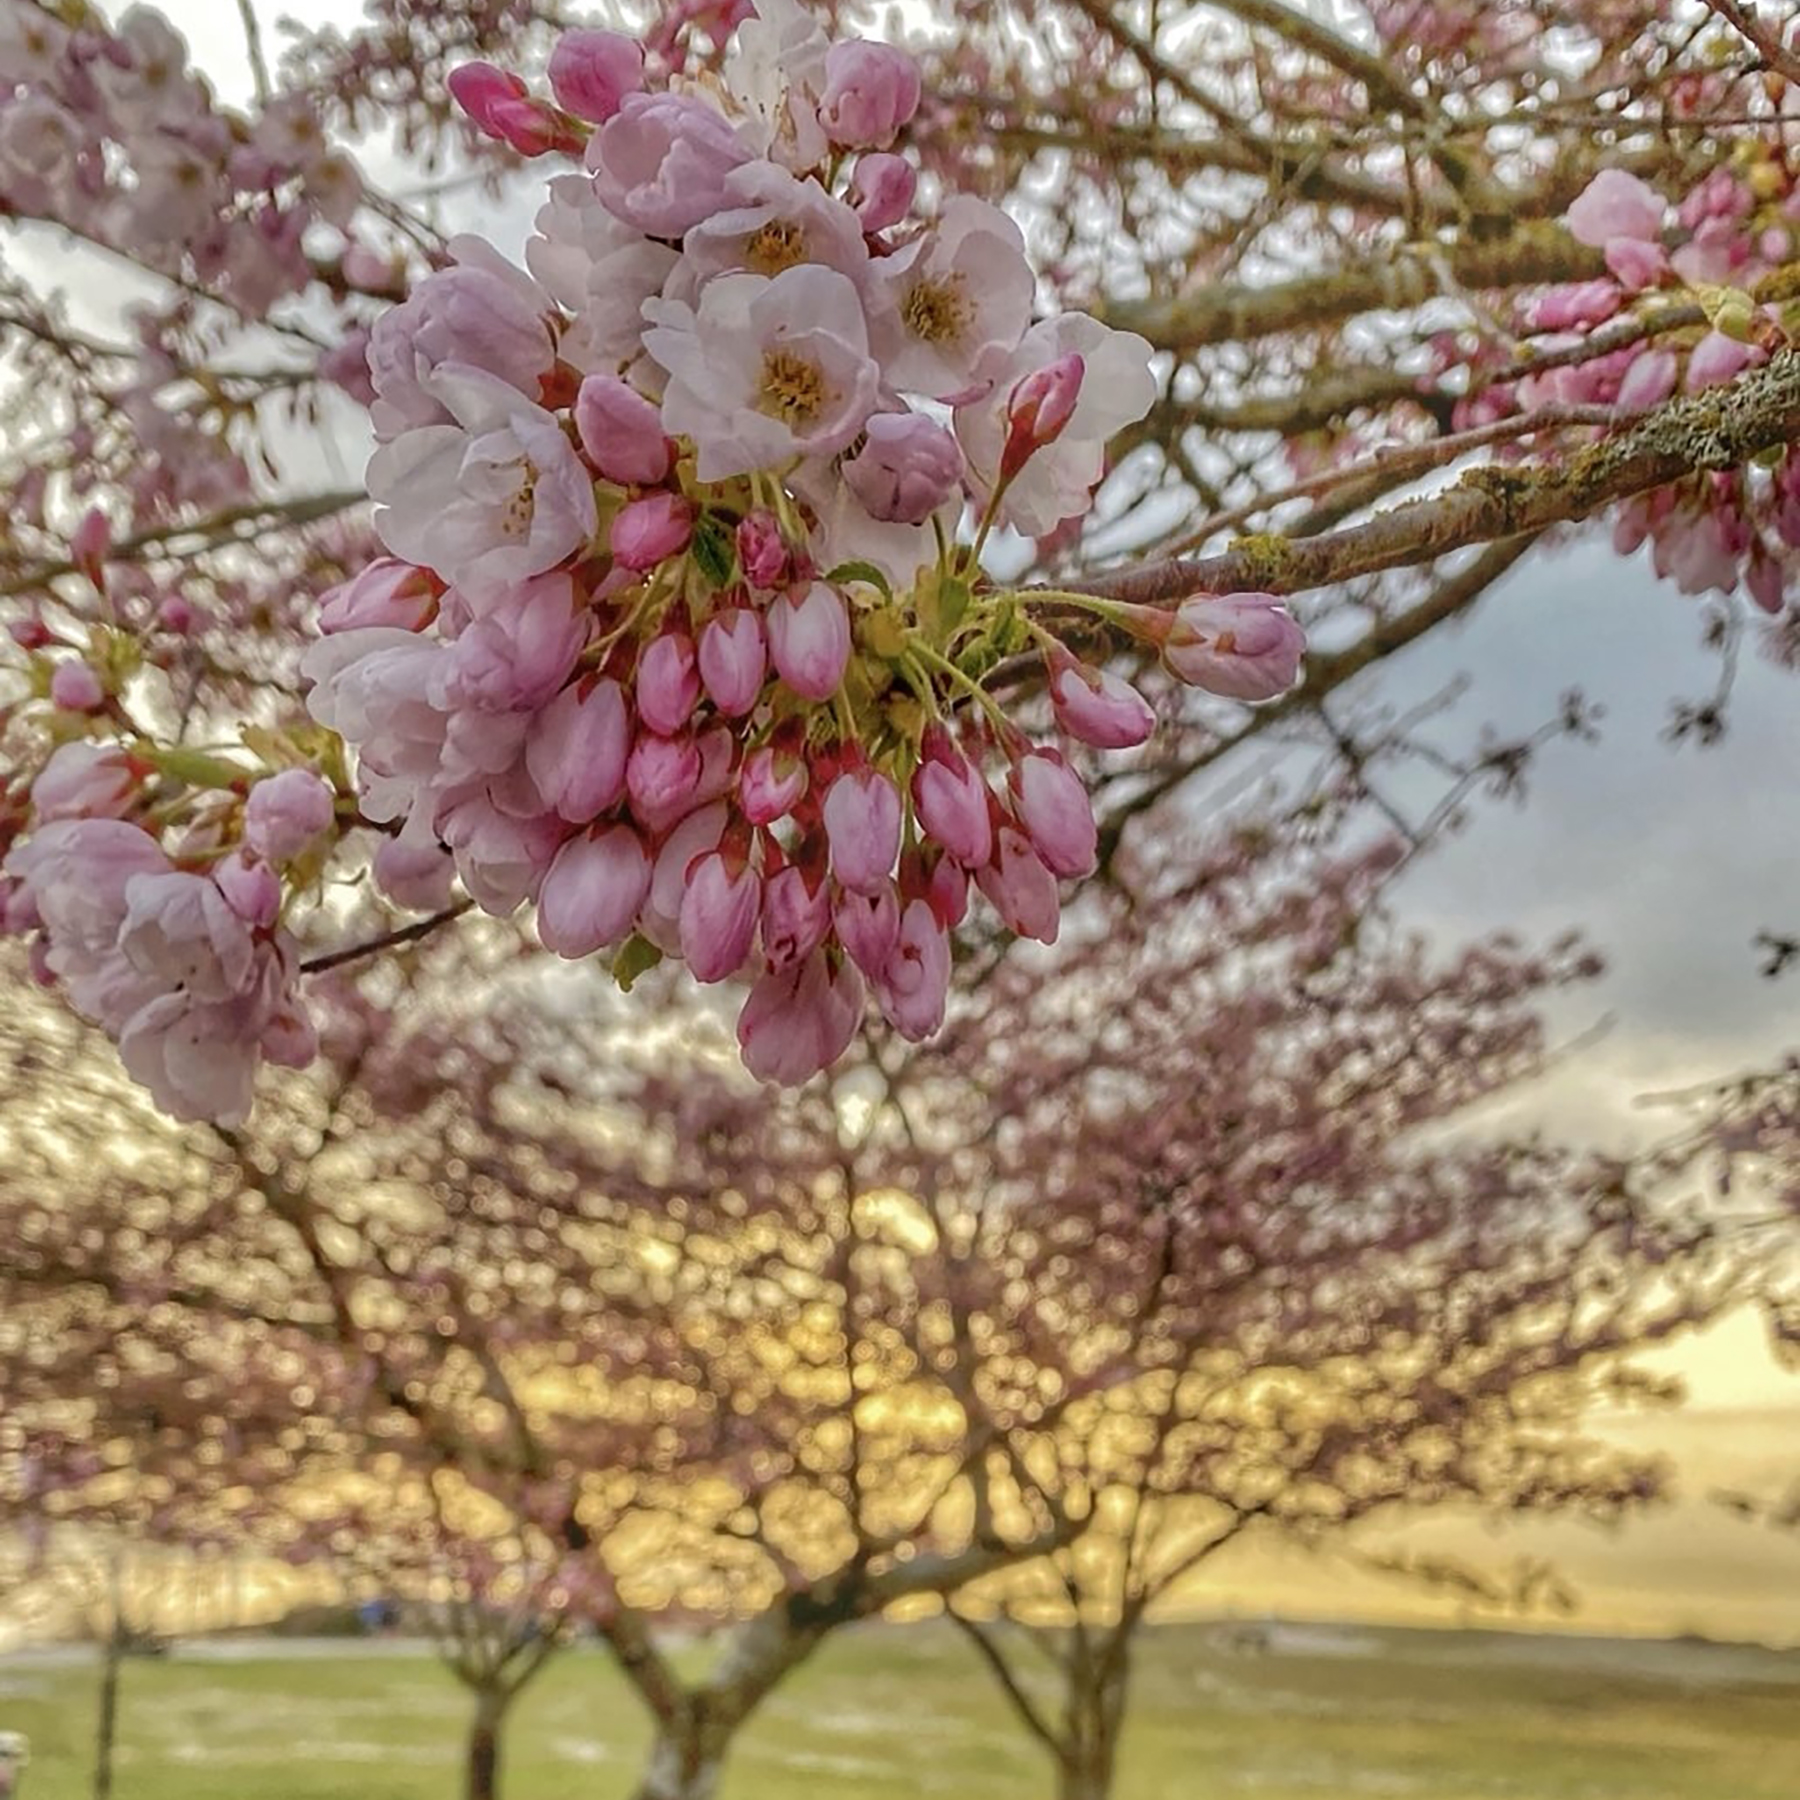 A photo of partially bloomed cherry blossoms, set against the backdrop of a park at dusk.